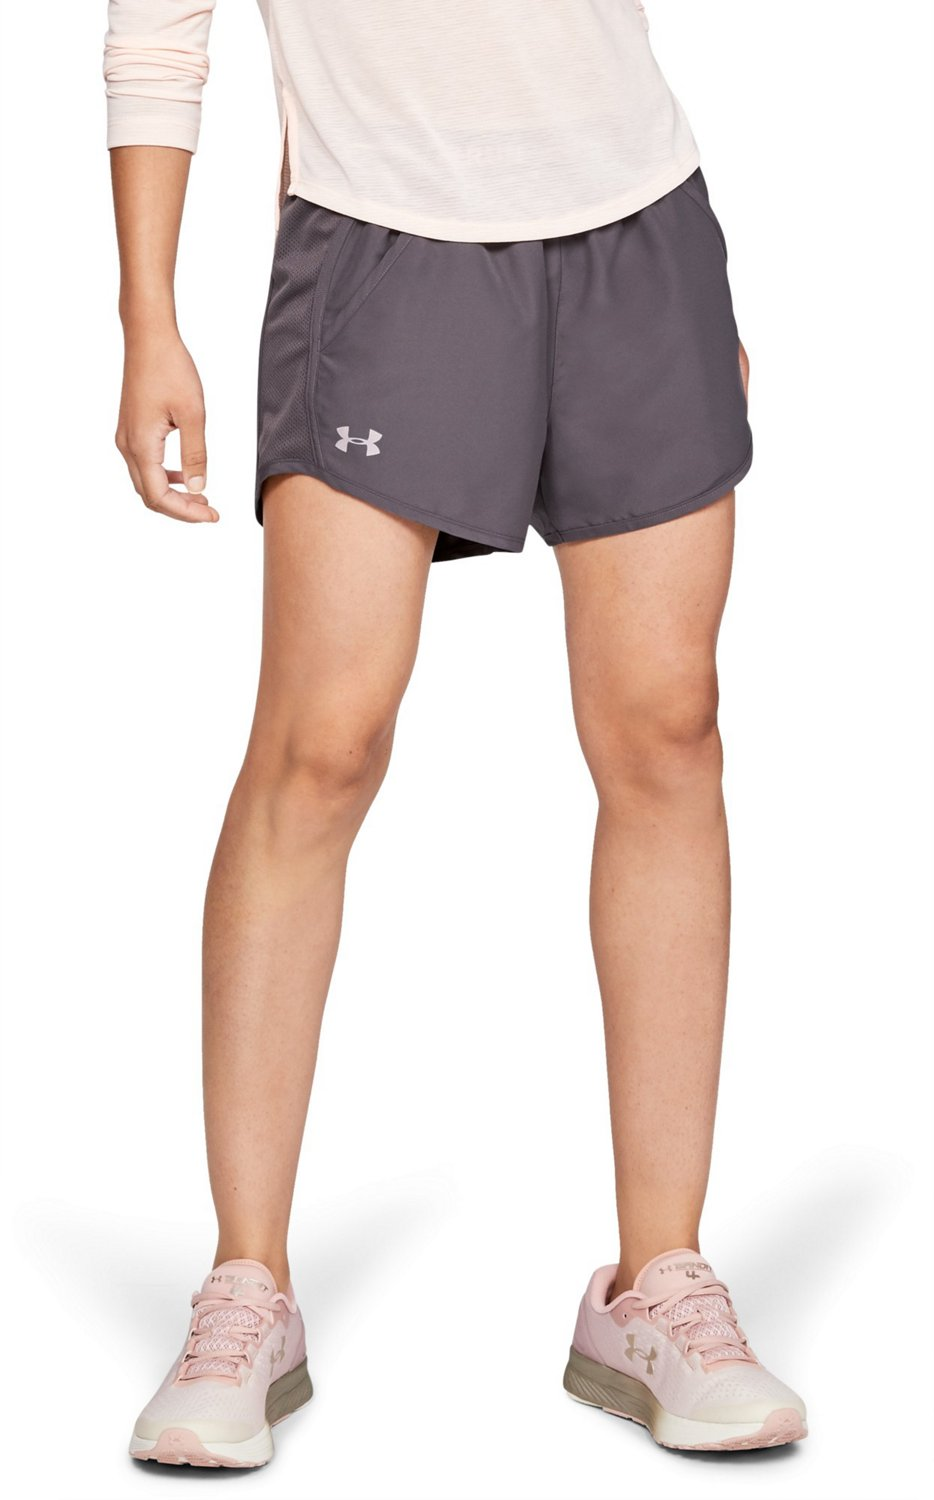 5b3ba10da34d0 Under Armour Women s Fly-By Graphic Waistband Running Shorts